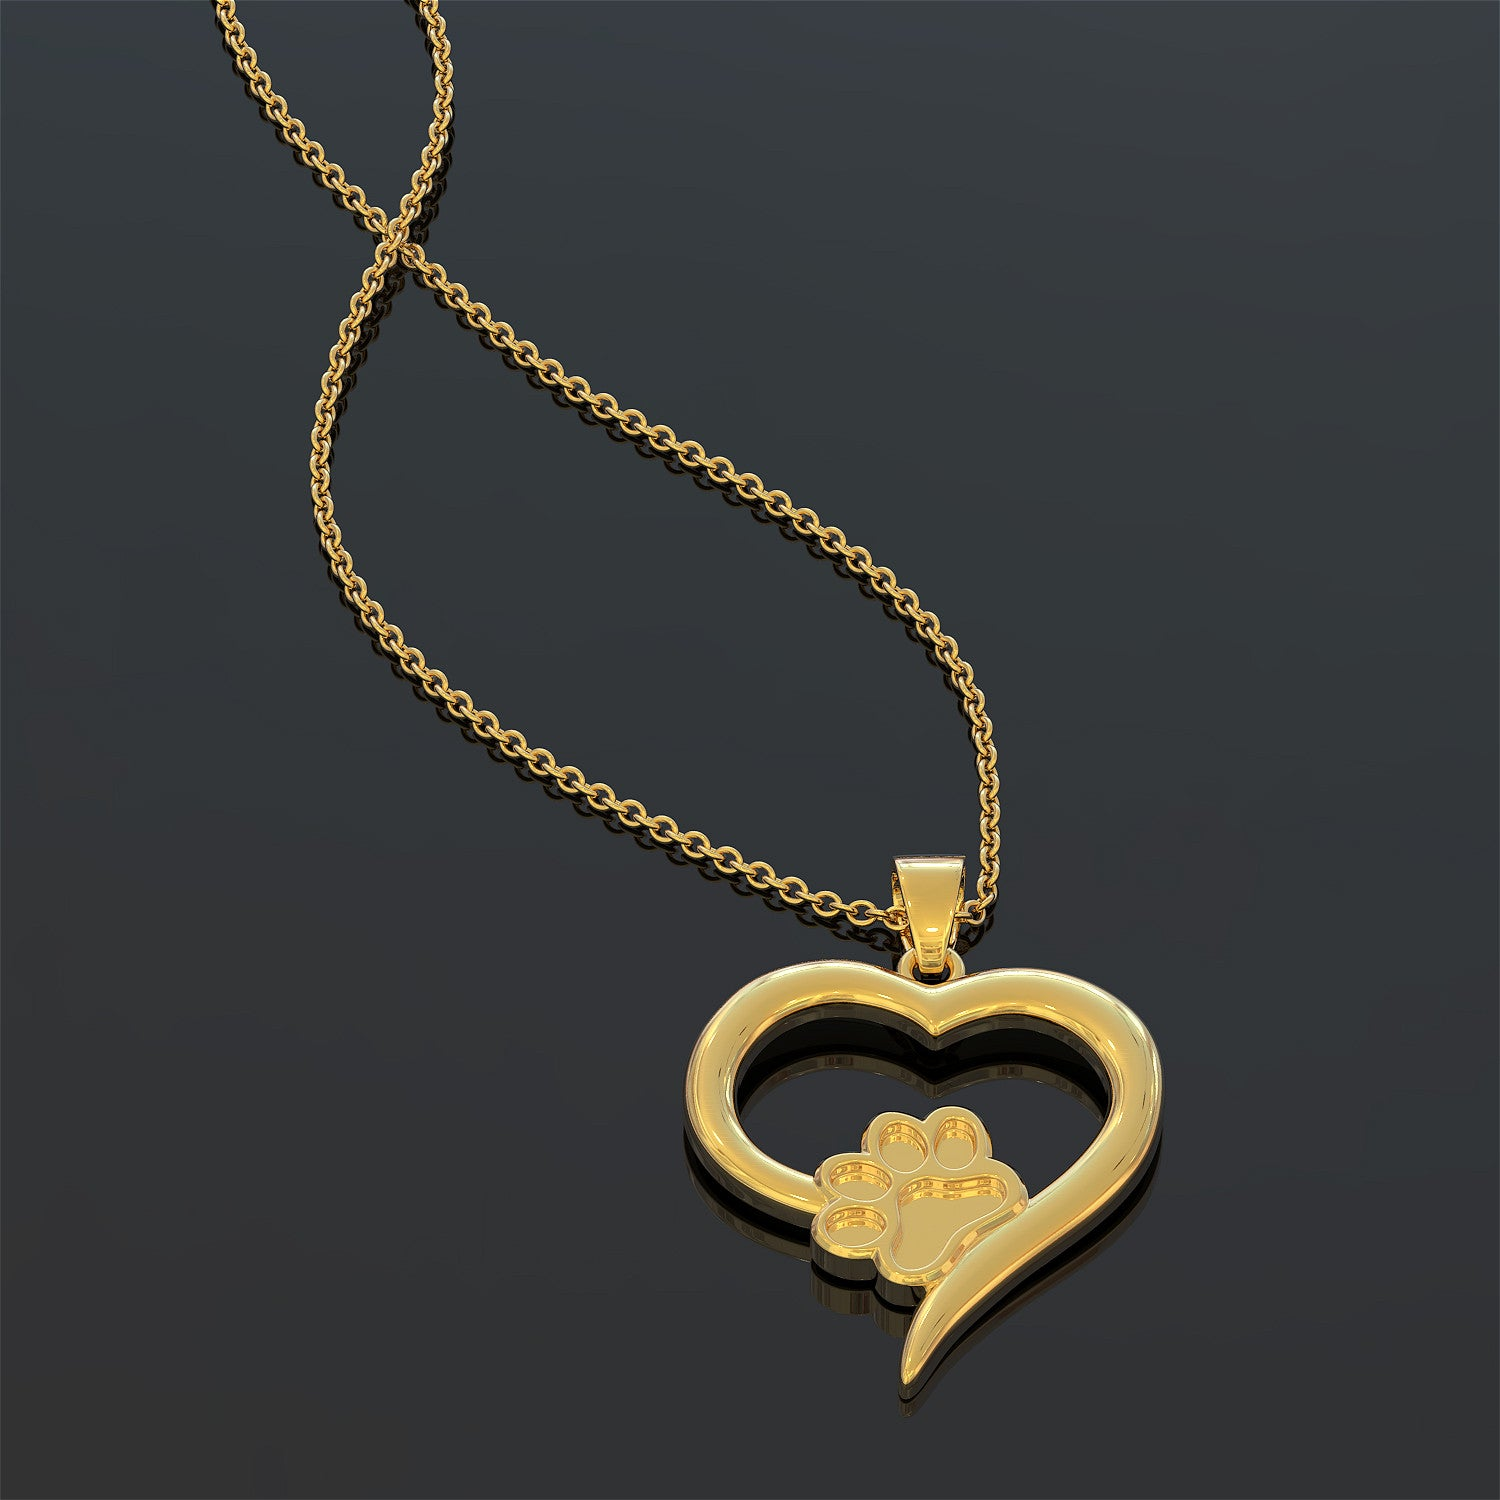 Forever Love Heart Puppy Necklace